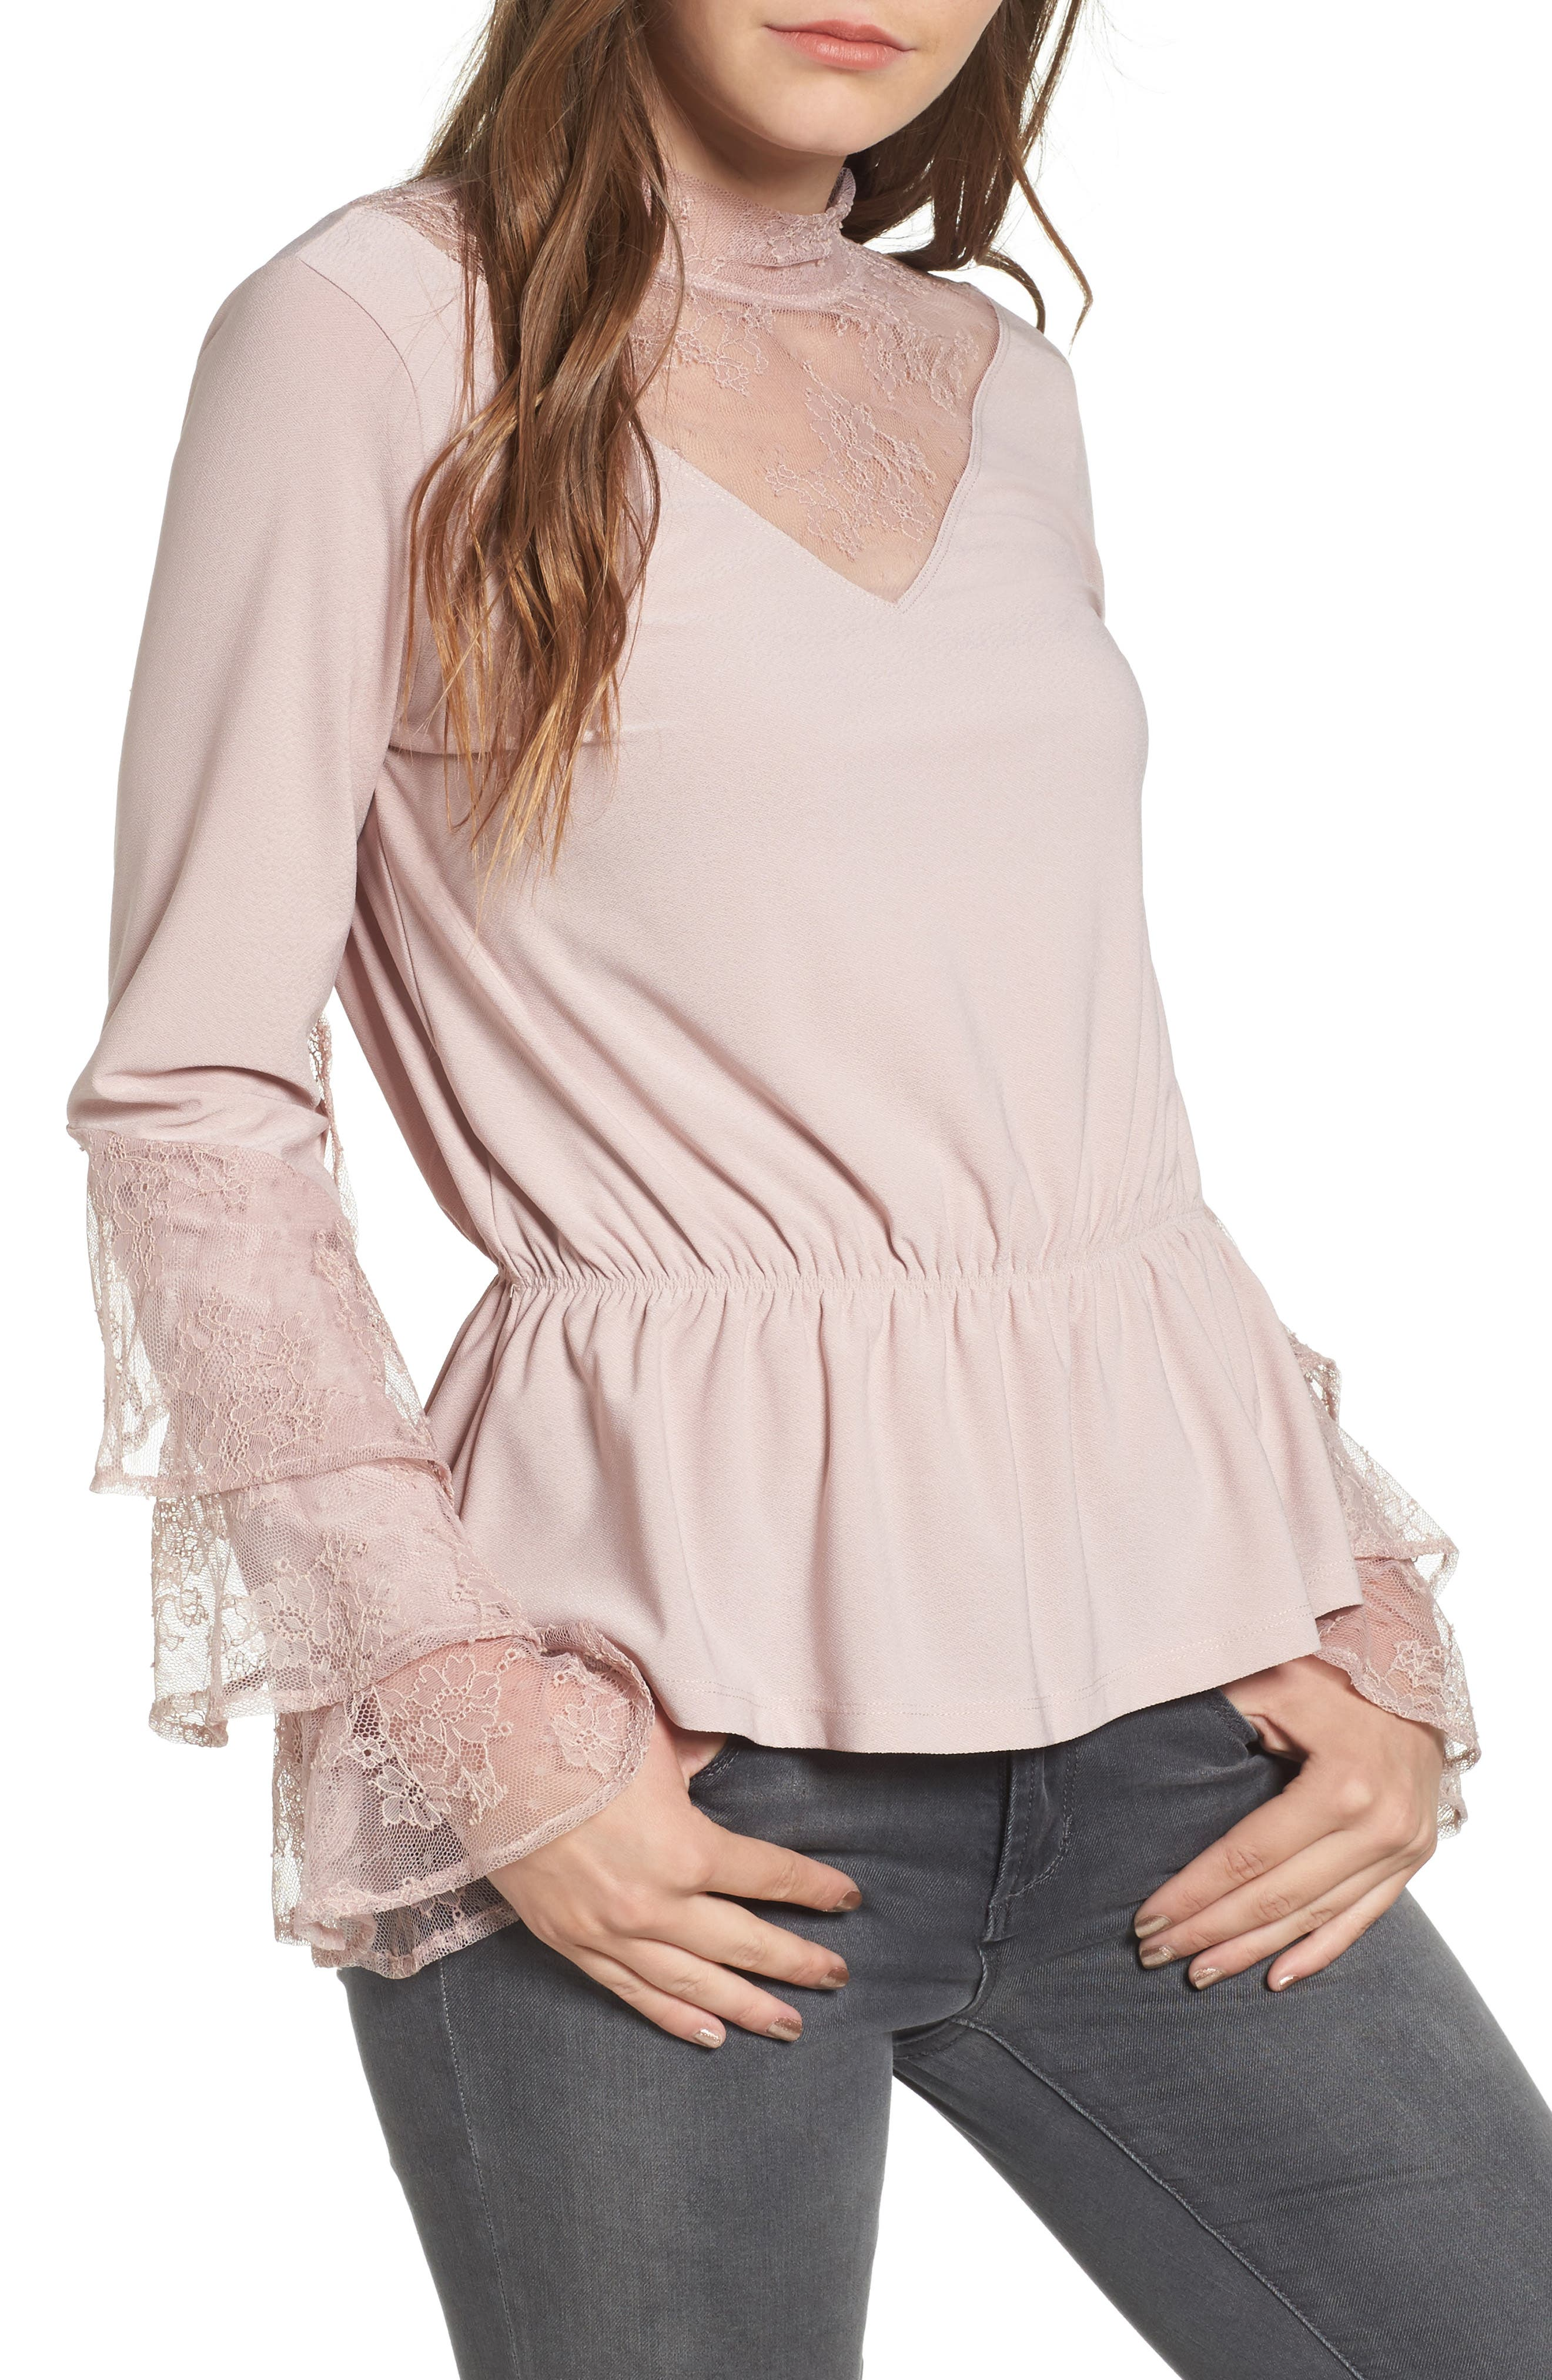 Spiral Lace Top,                         Main,                         color, 680